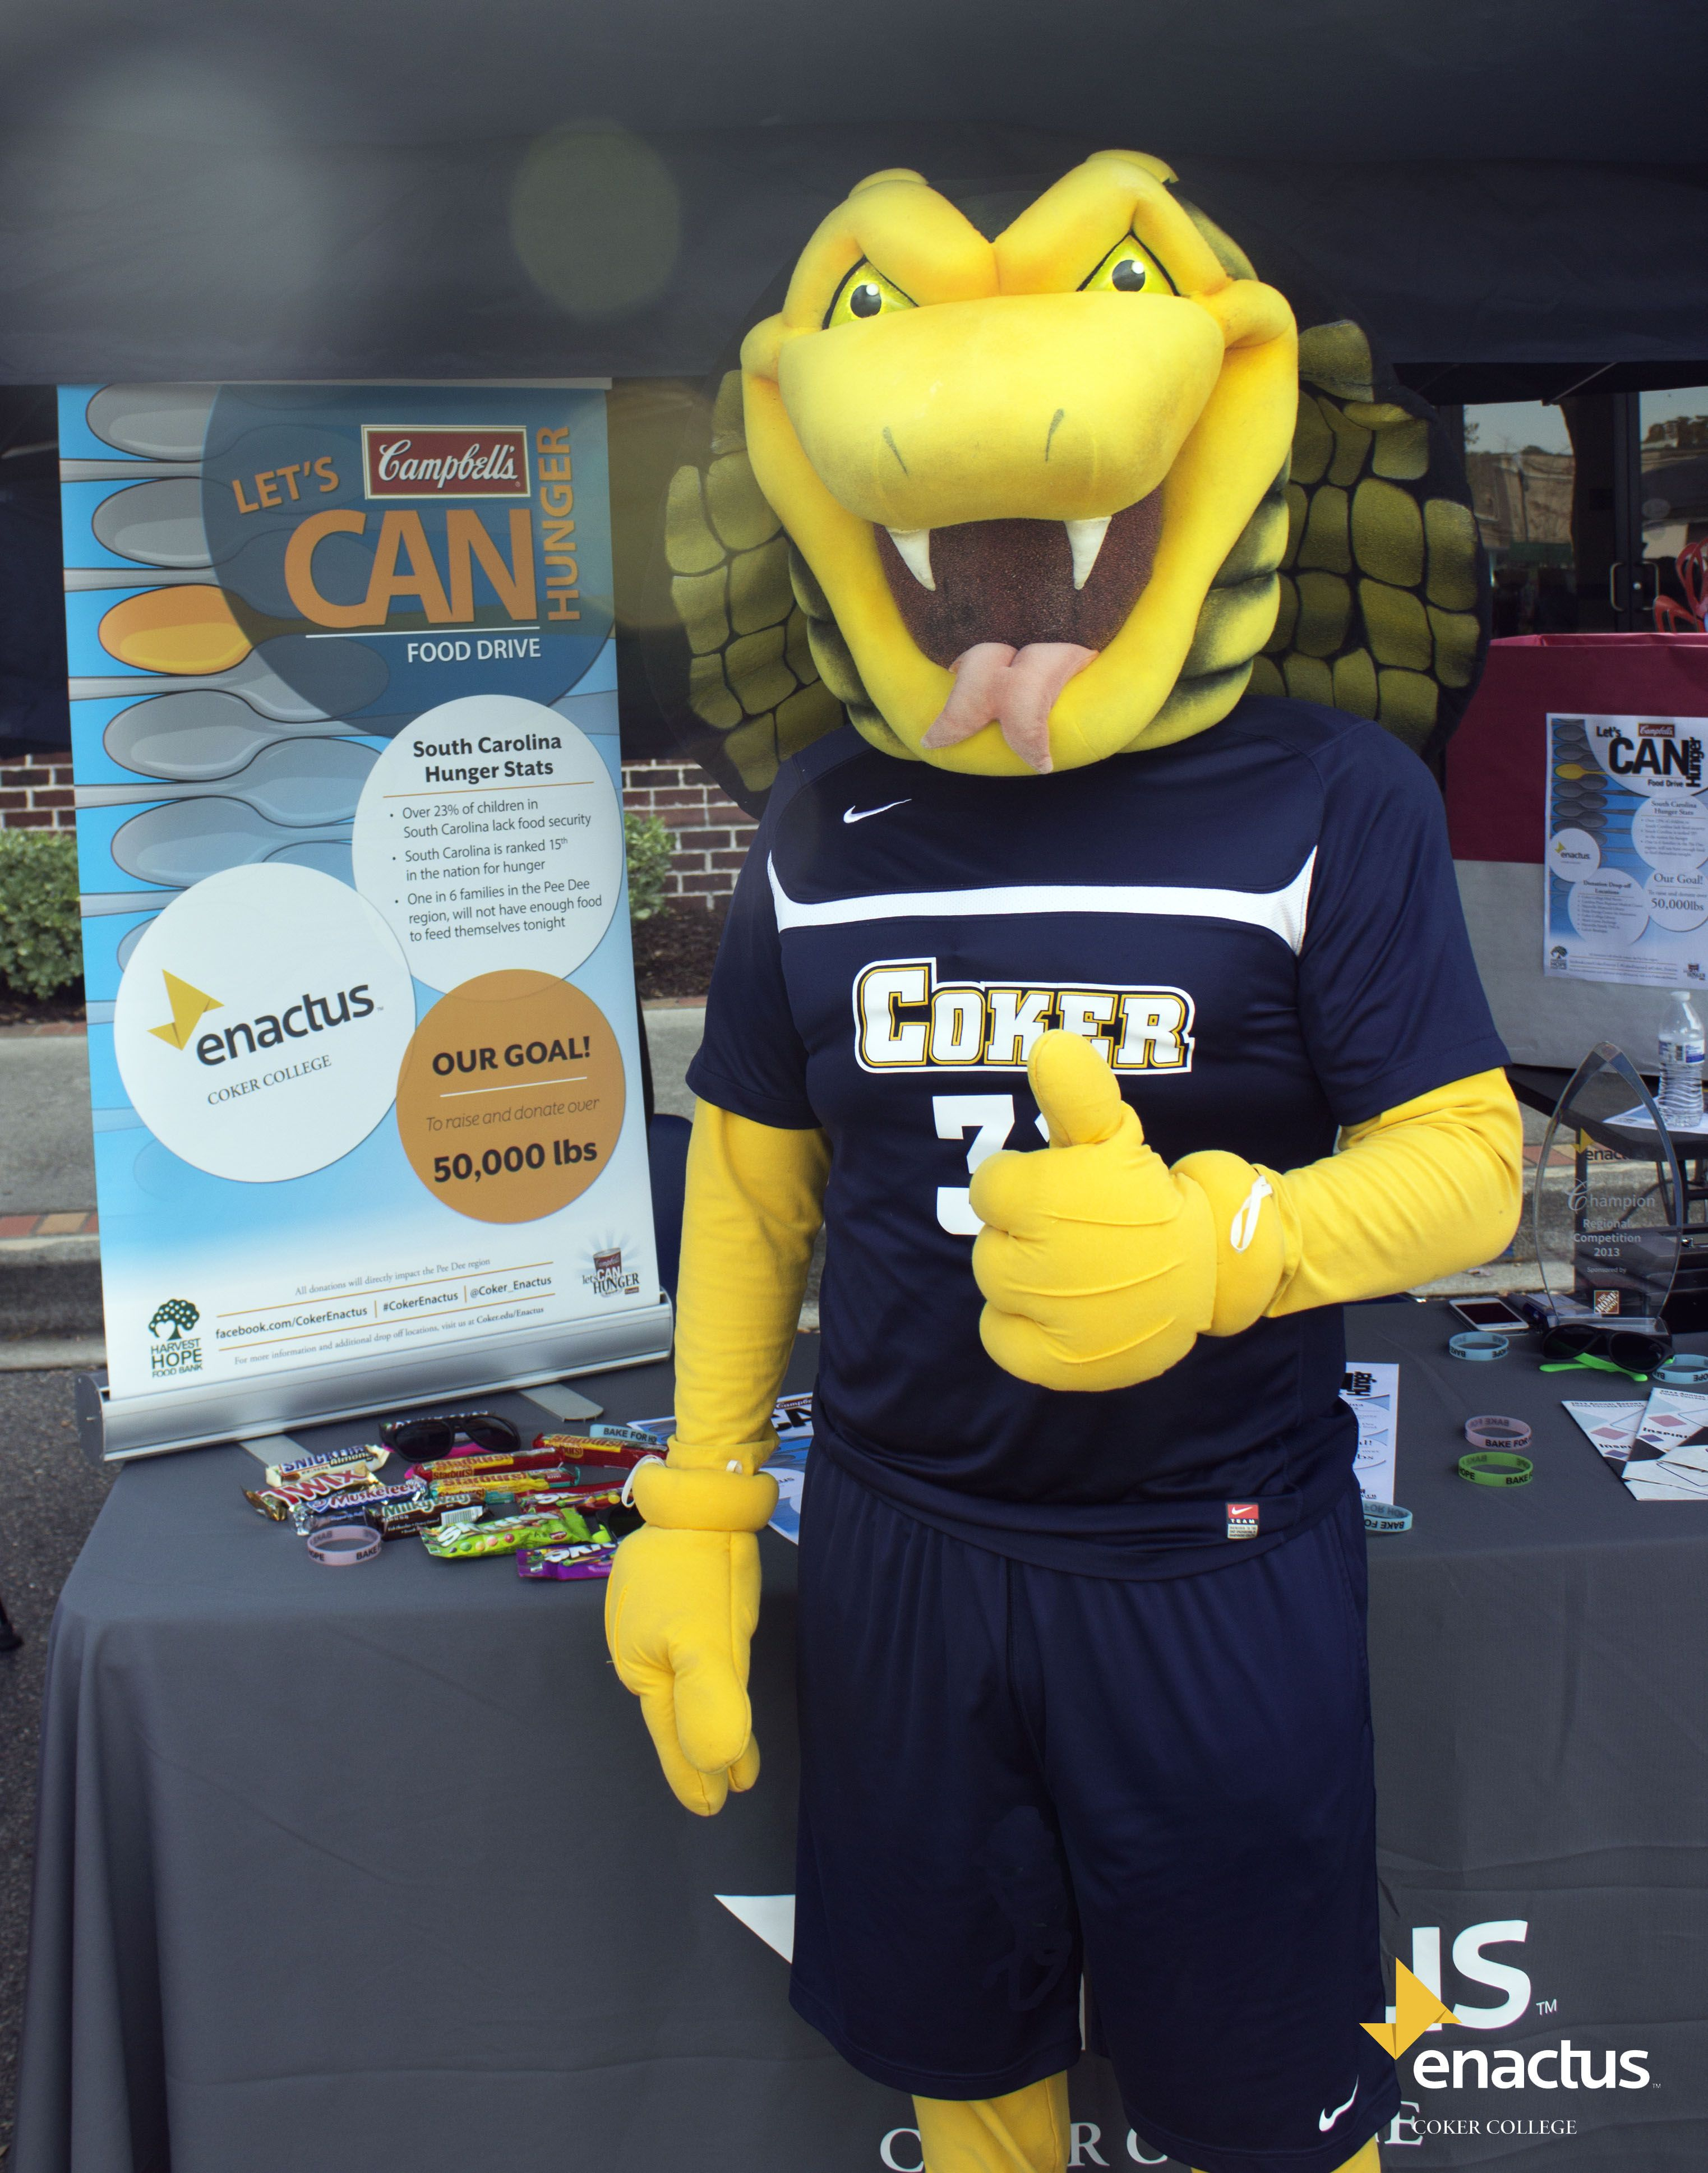 Coker S Mascot Striker Showed His Support At The Hartsville Marketplace On Saturday The 9 Haha Funny Fun Funny